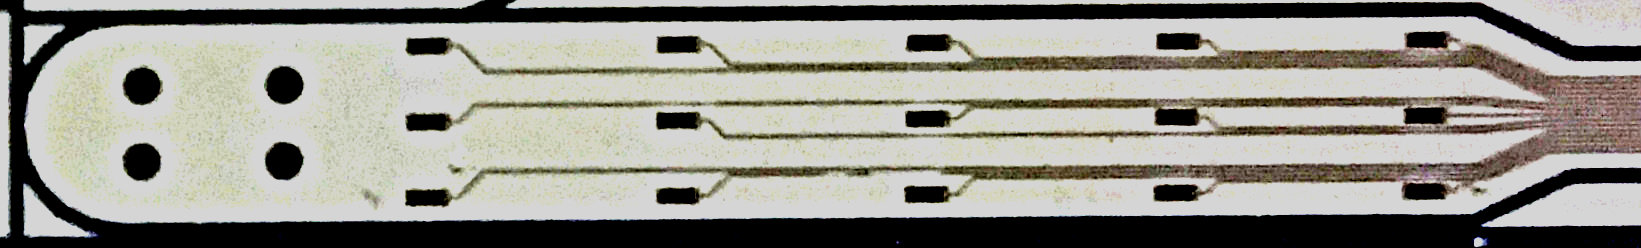 close-up of a microelectrode array used for spinal stimulation